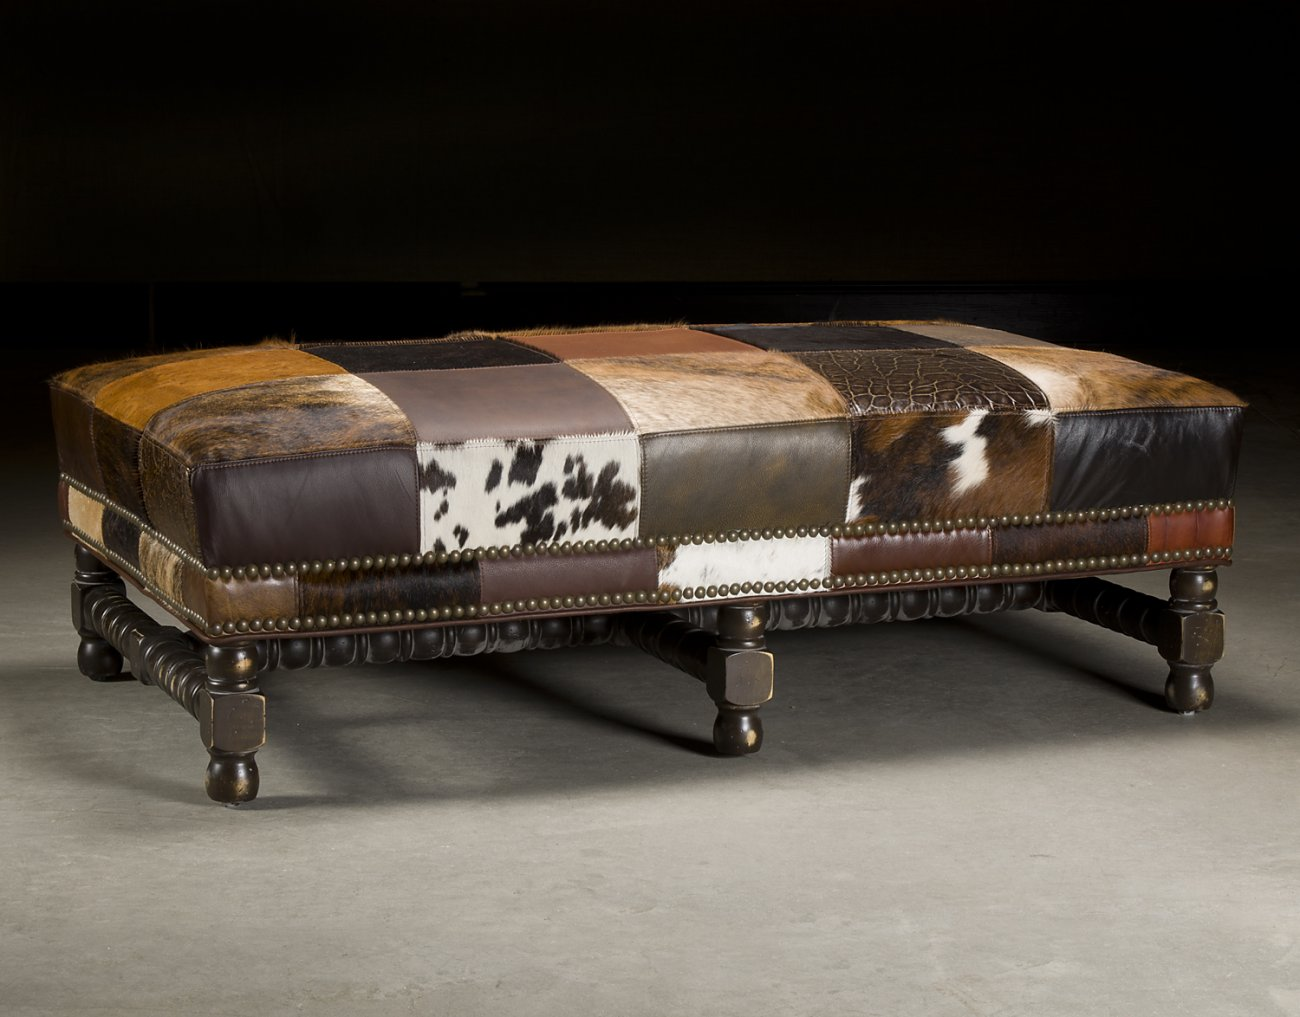 Cow Hide Leather Patches Ottoman.